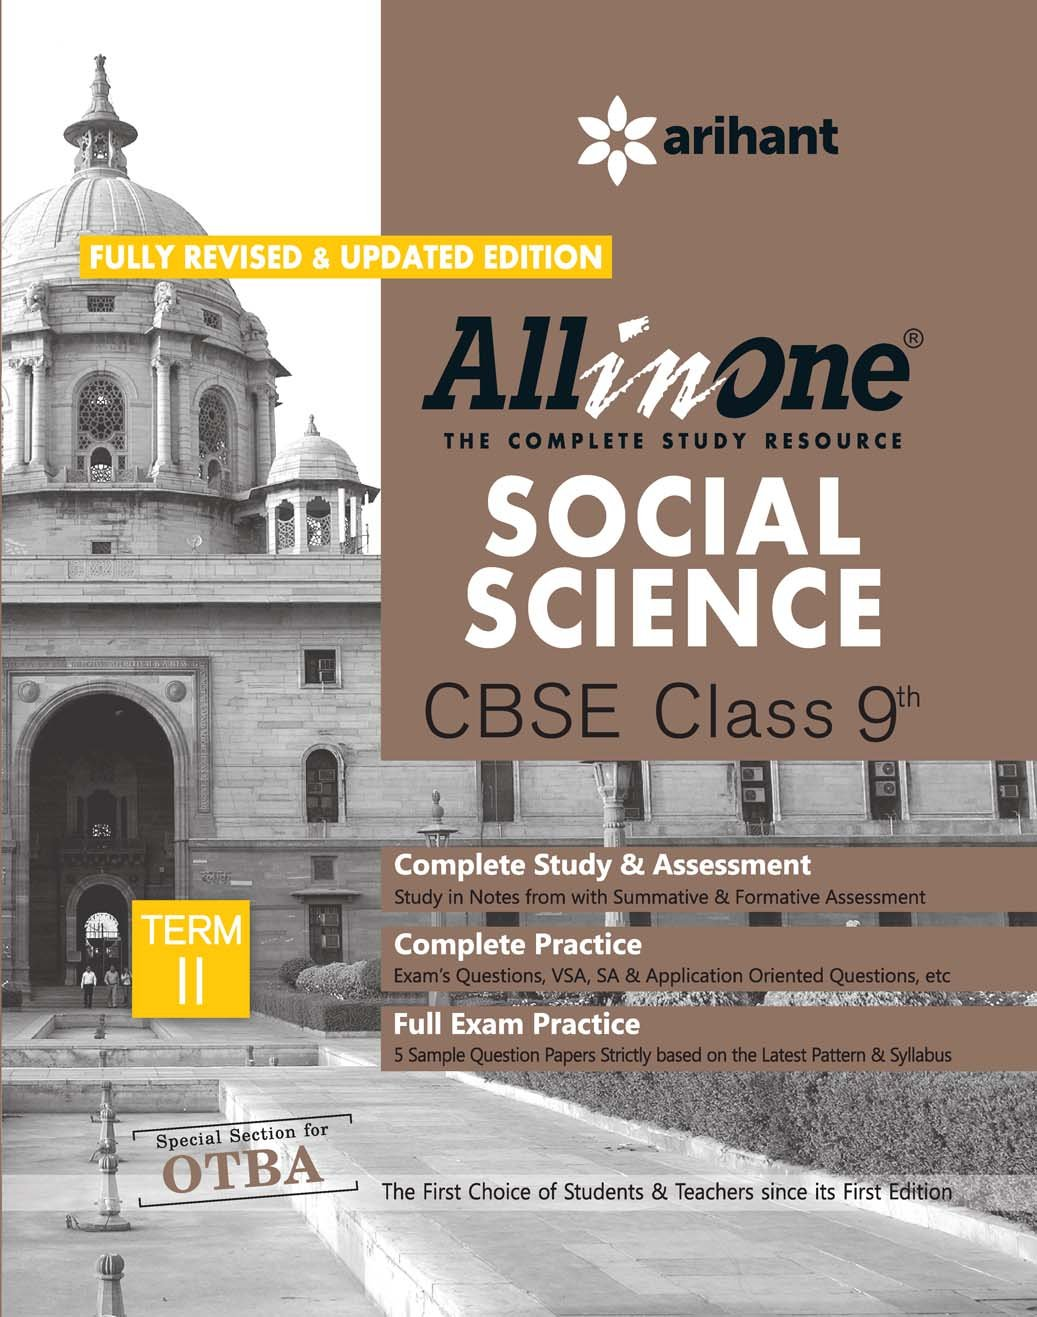 All in One Social Science CBSE Class 9th Term-II: Amazon in